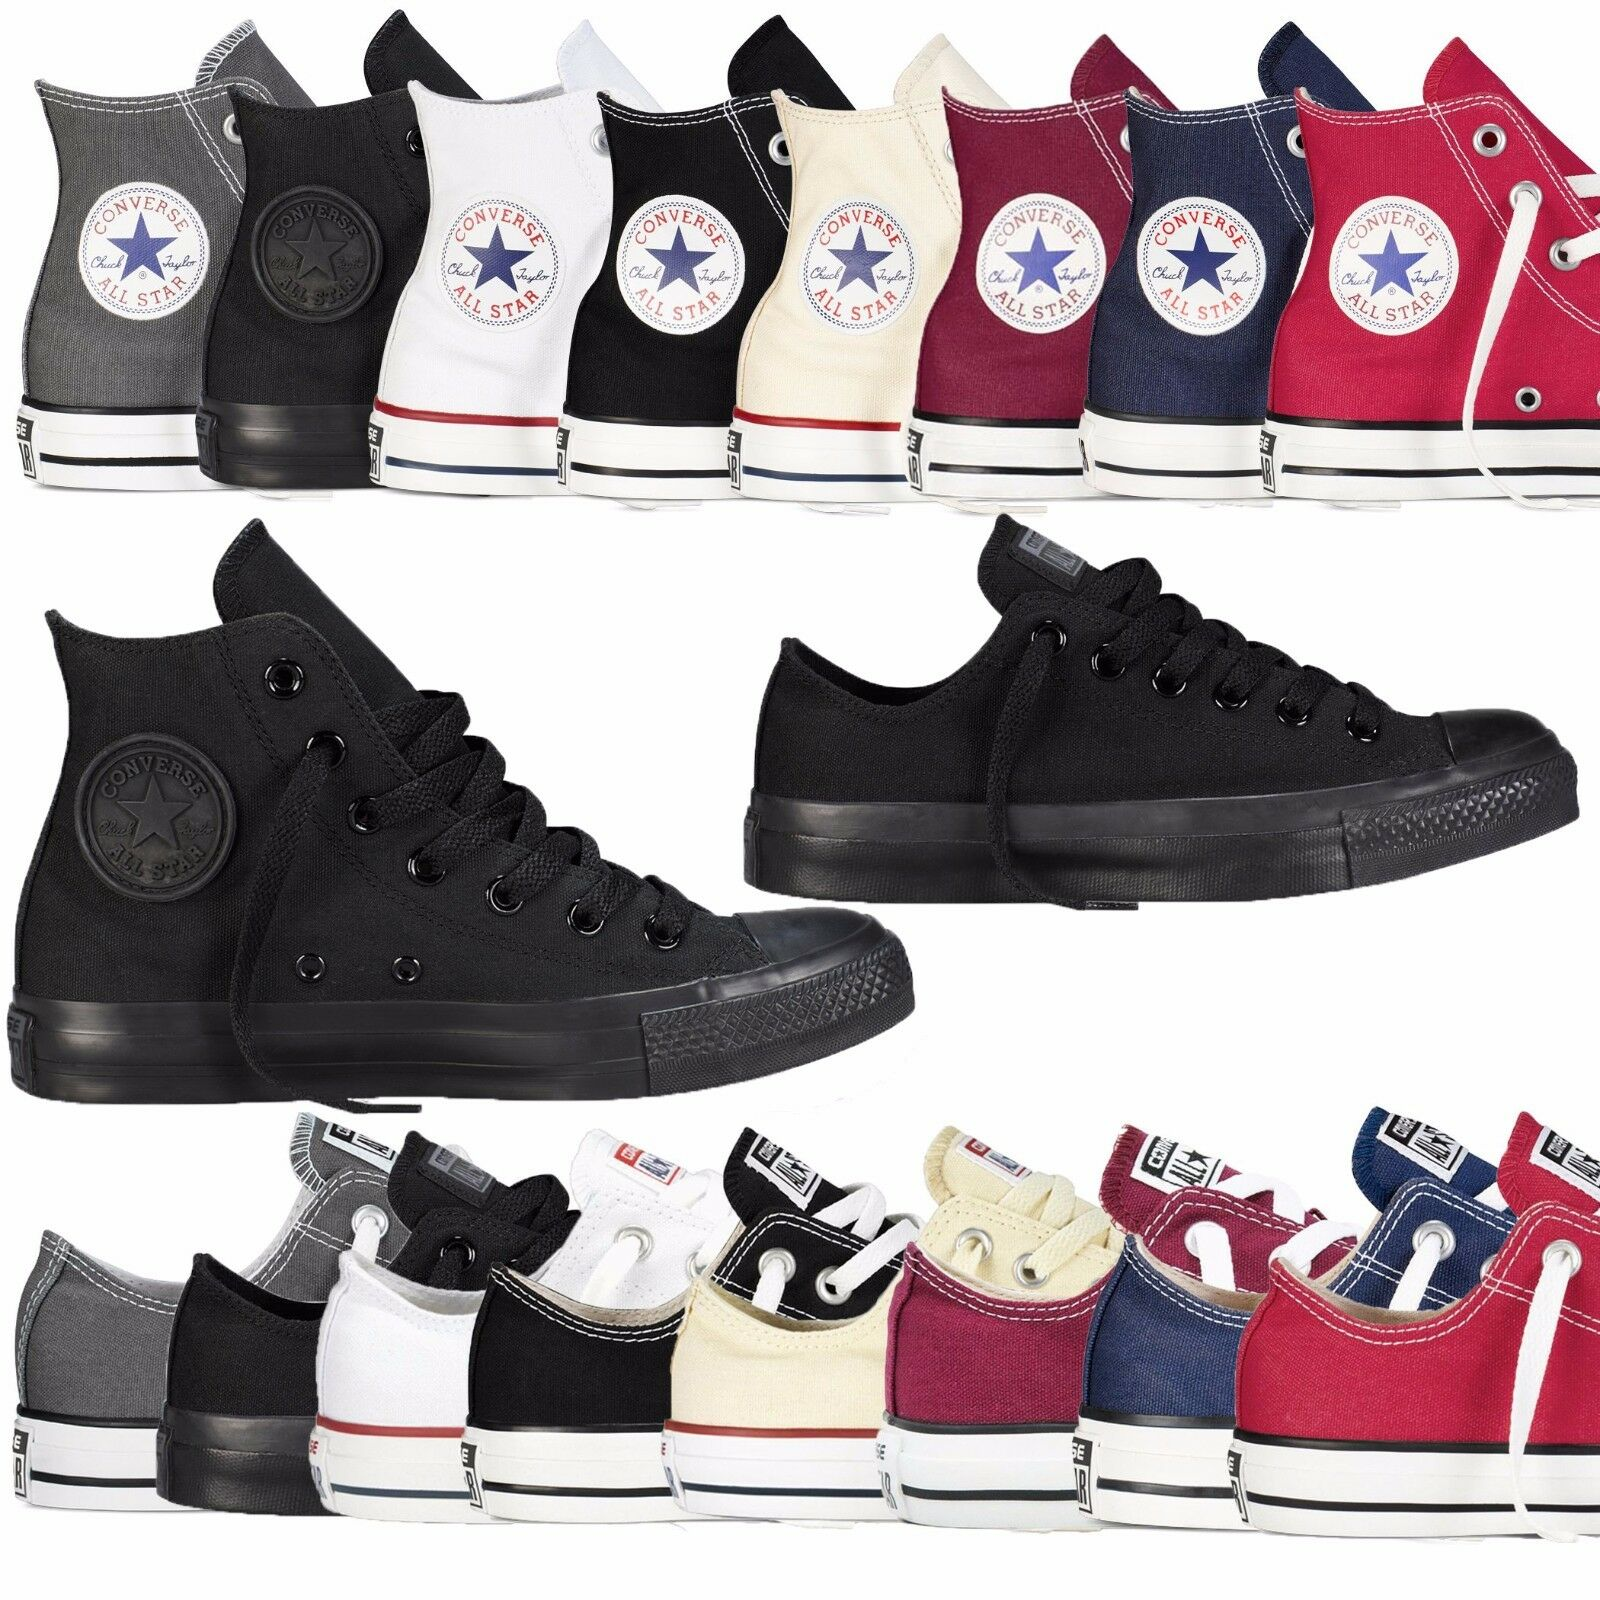 01df1afe44 This product is 100% Genuine and comes with Original Packaging and Tags. Converse  All Star Chuck Taylor Lo OX ...